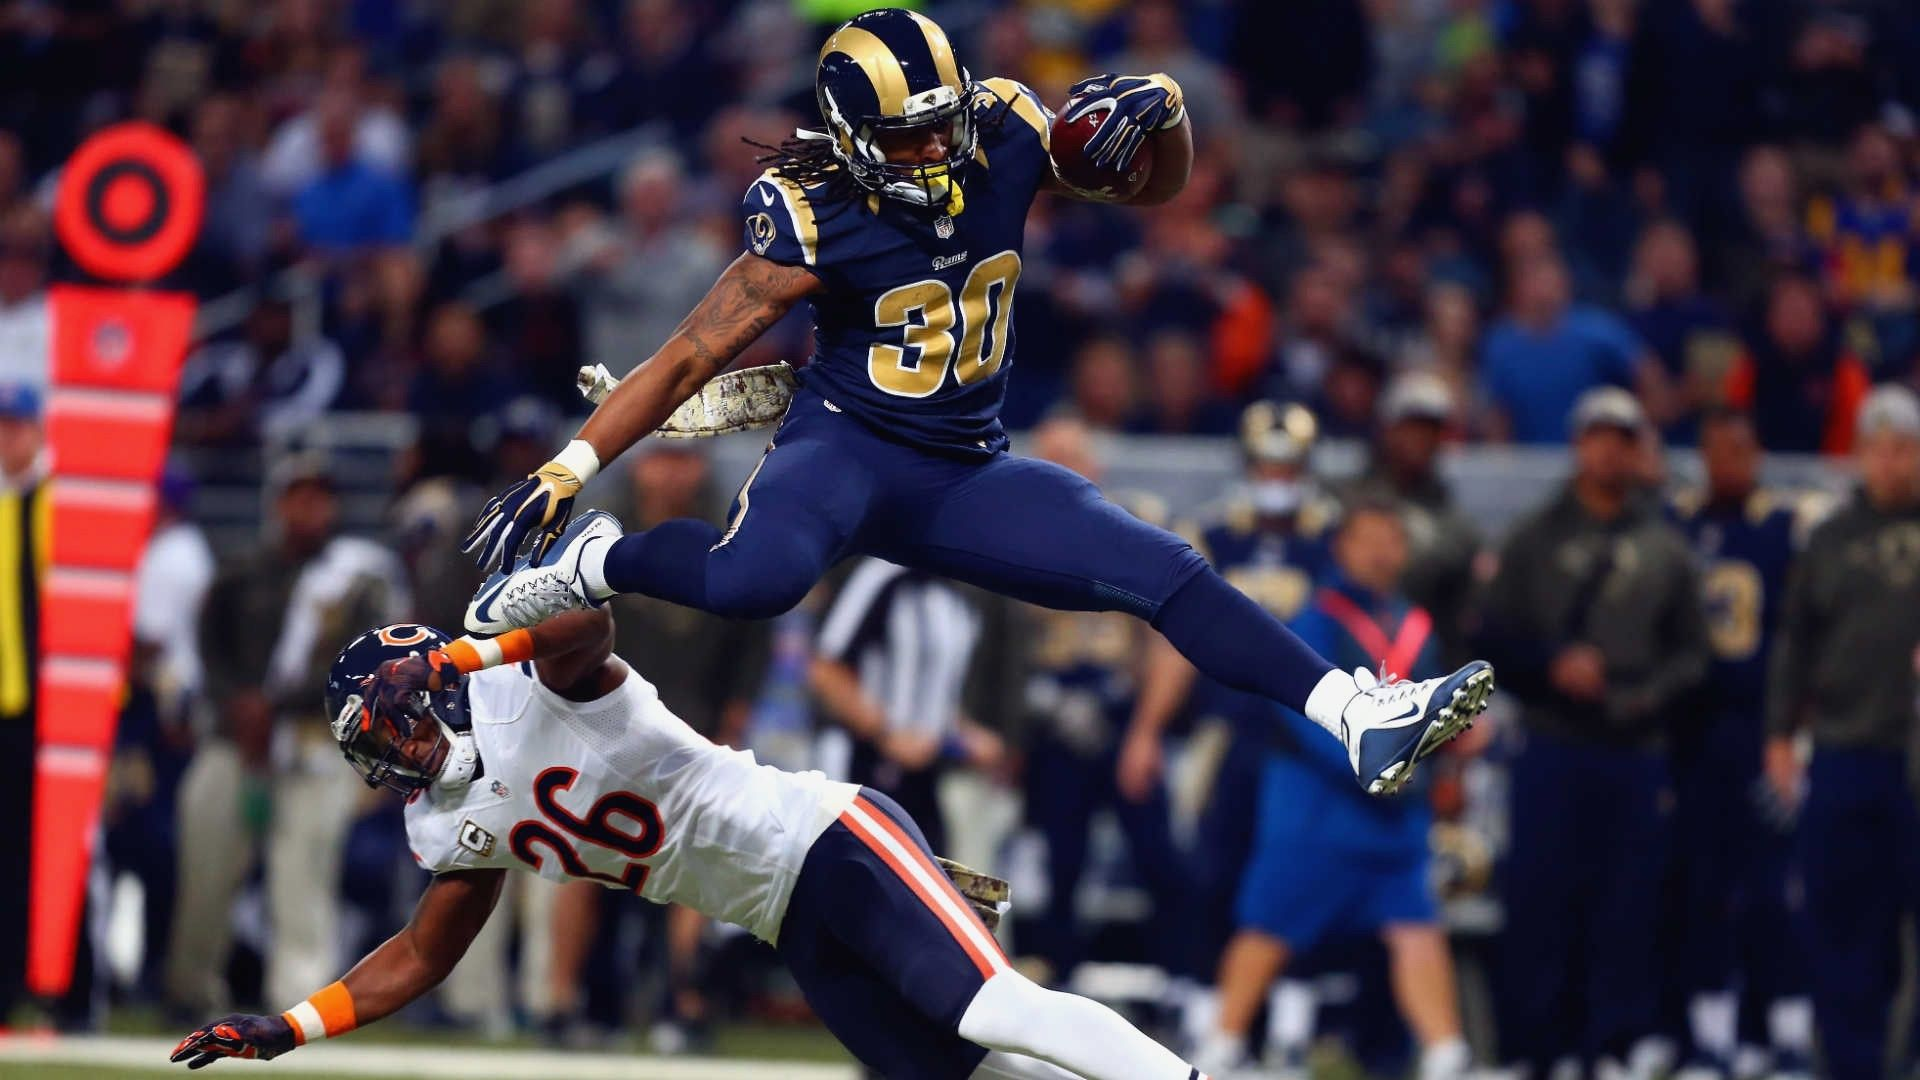 10 New Todd Gurley Rams Wallpaper Full Hd 1080p For Pc Background Ram Wallpaper Todd Gurley Wallpaper